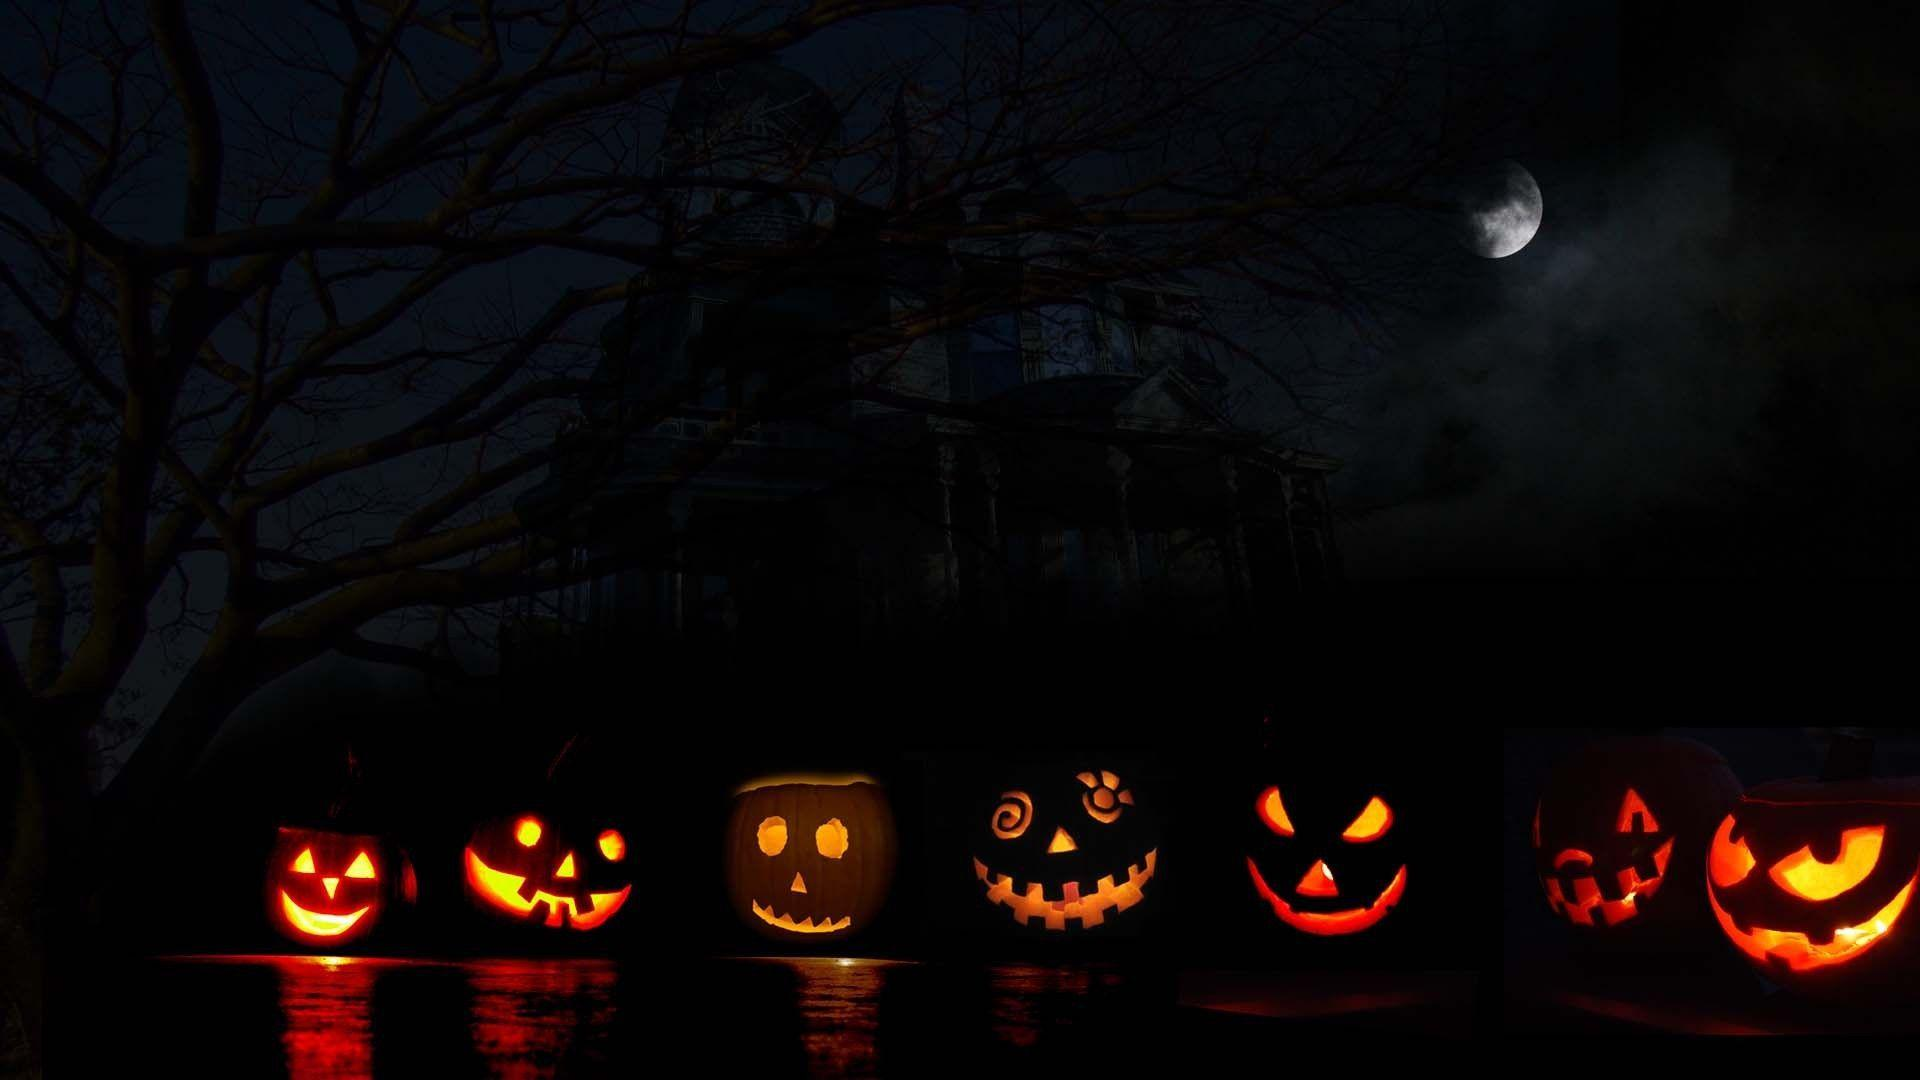 Halloween Pumpkin Carving Desktop Background | Desktop Backgrounds HQ